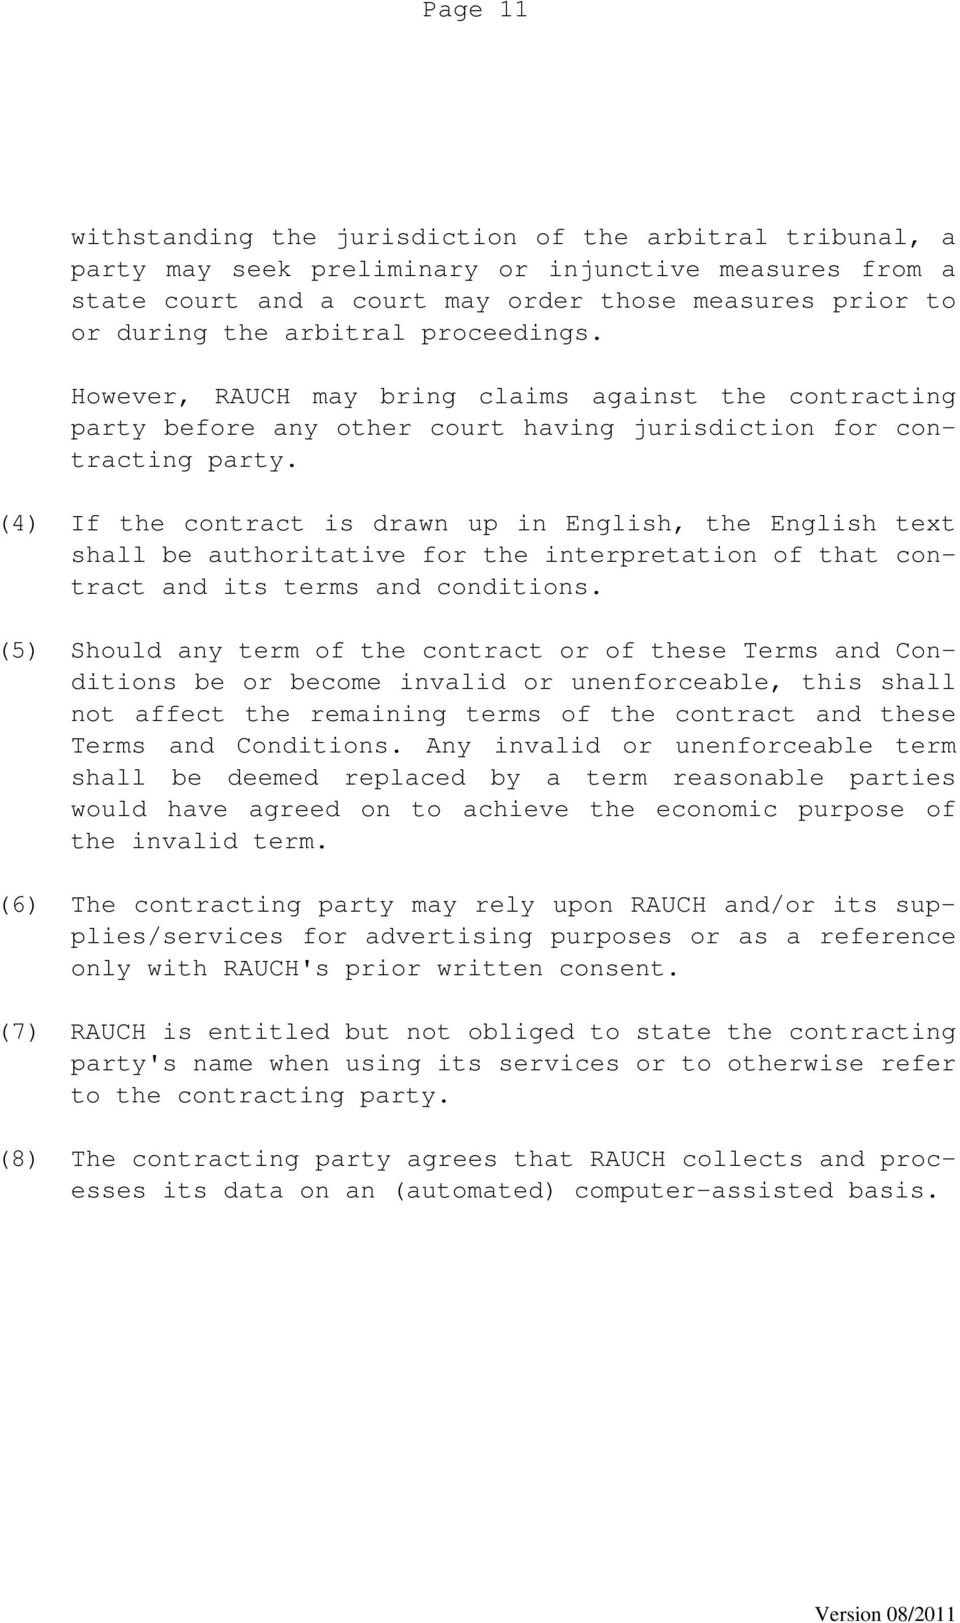 (4) If the contract is drawn up in English, the English text shall be authoritative for the interpretation of that contract and its terms and conditions.